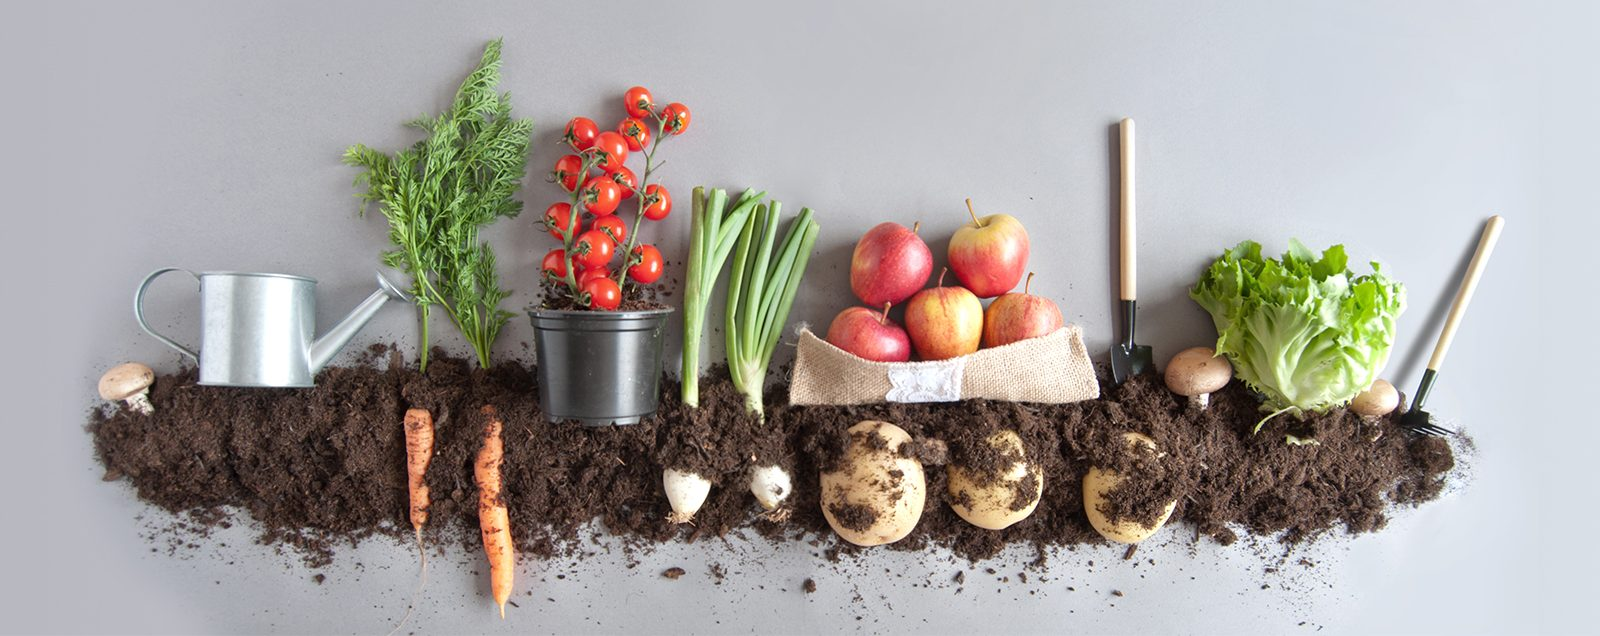 The image shows vegetables growing above and below soil with some garden tools